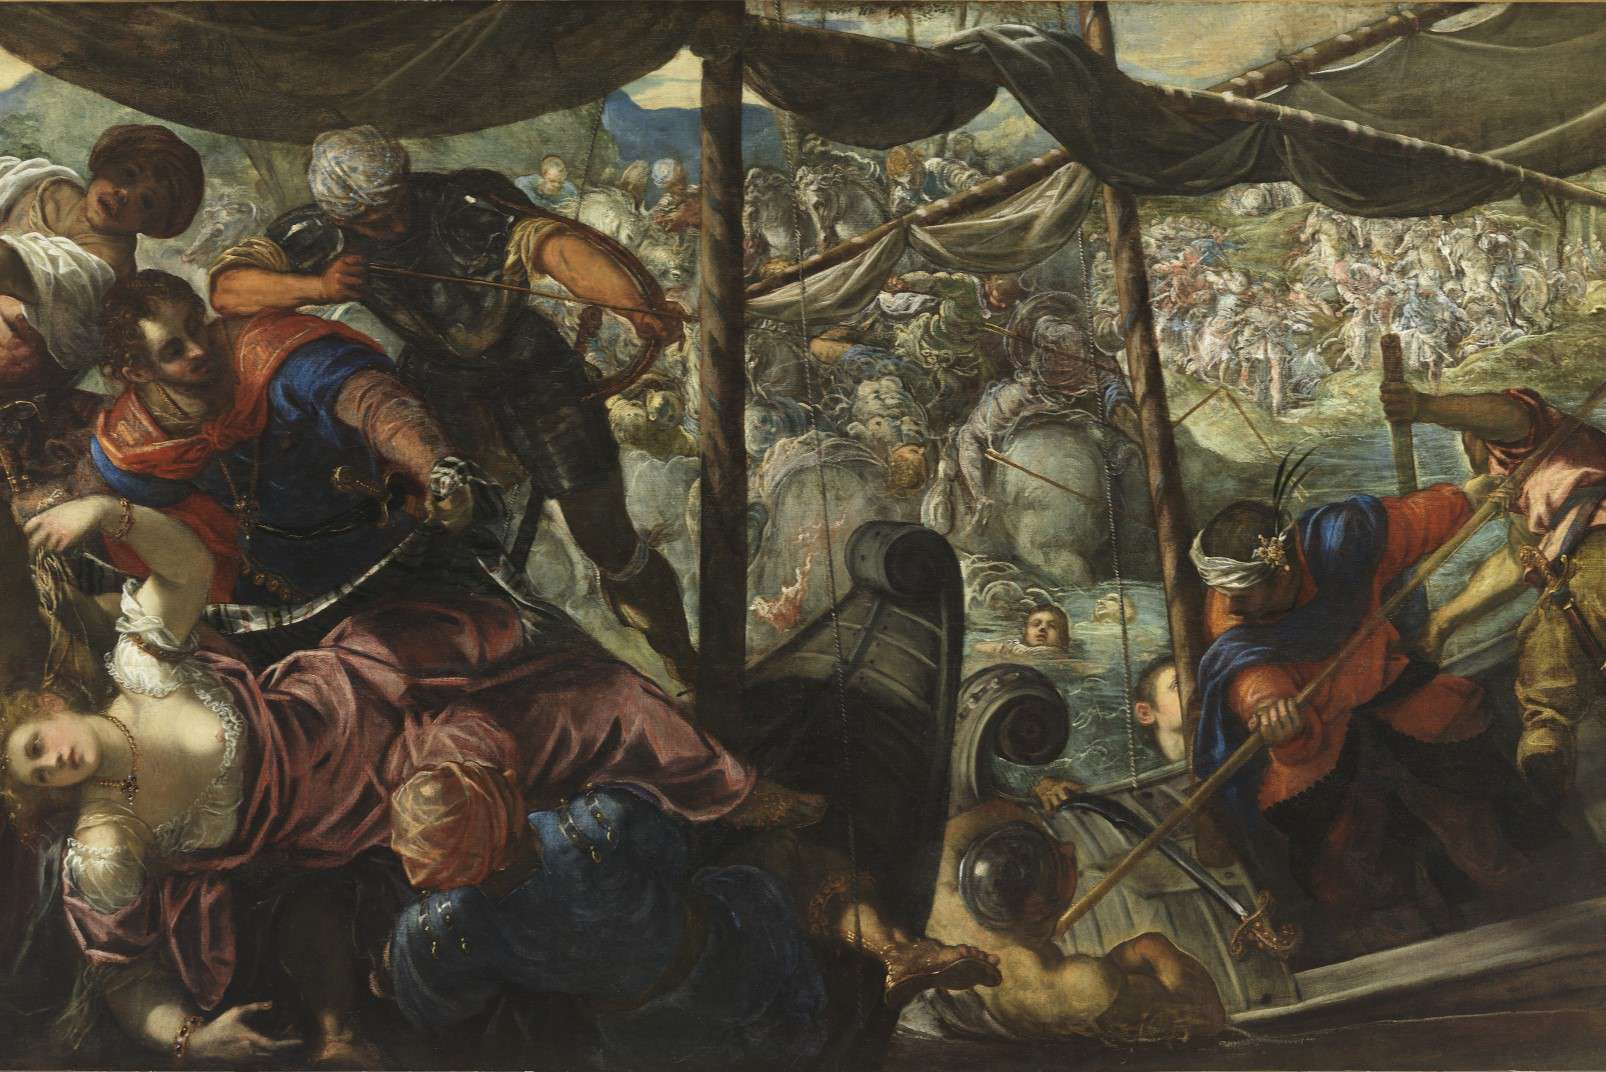 Tintoretto - The Abduction of Helen